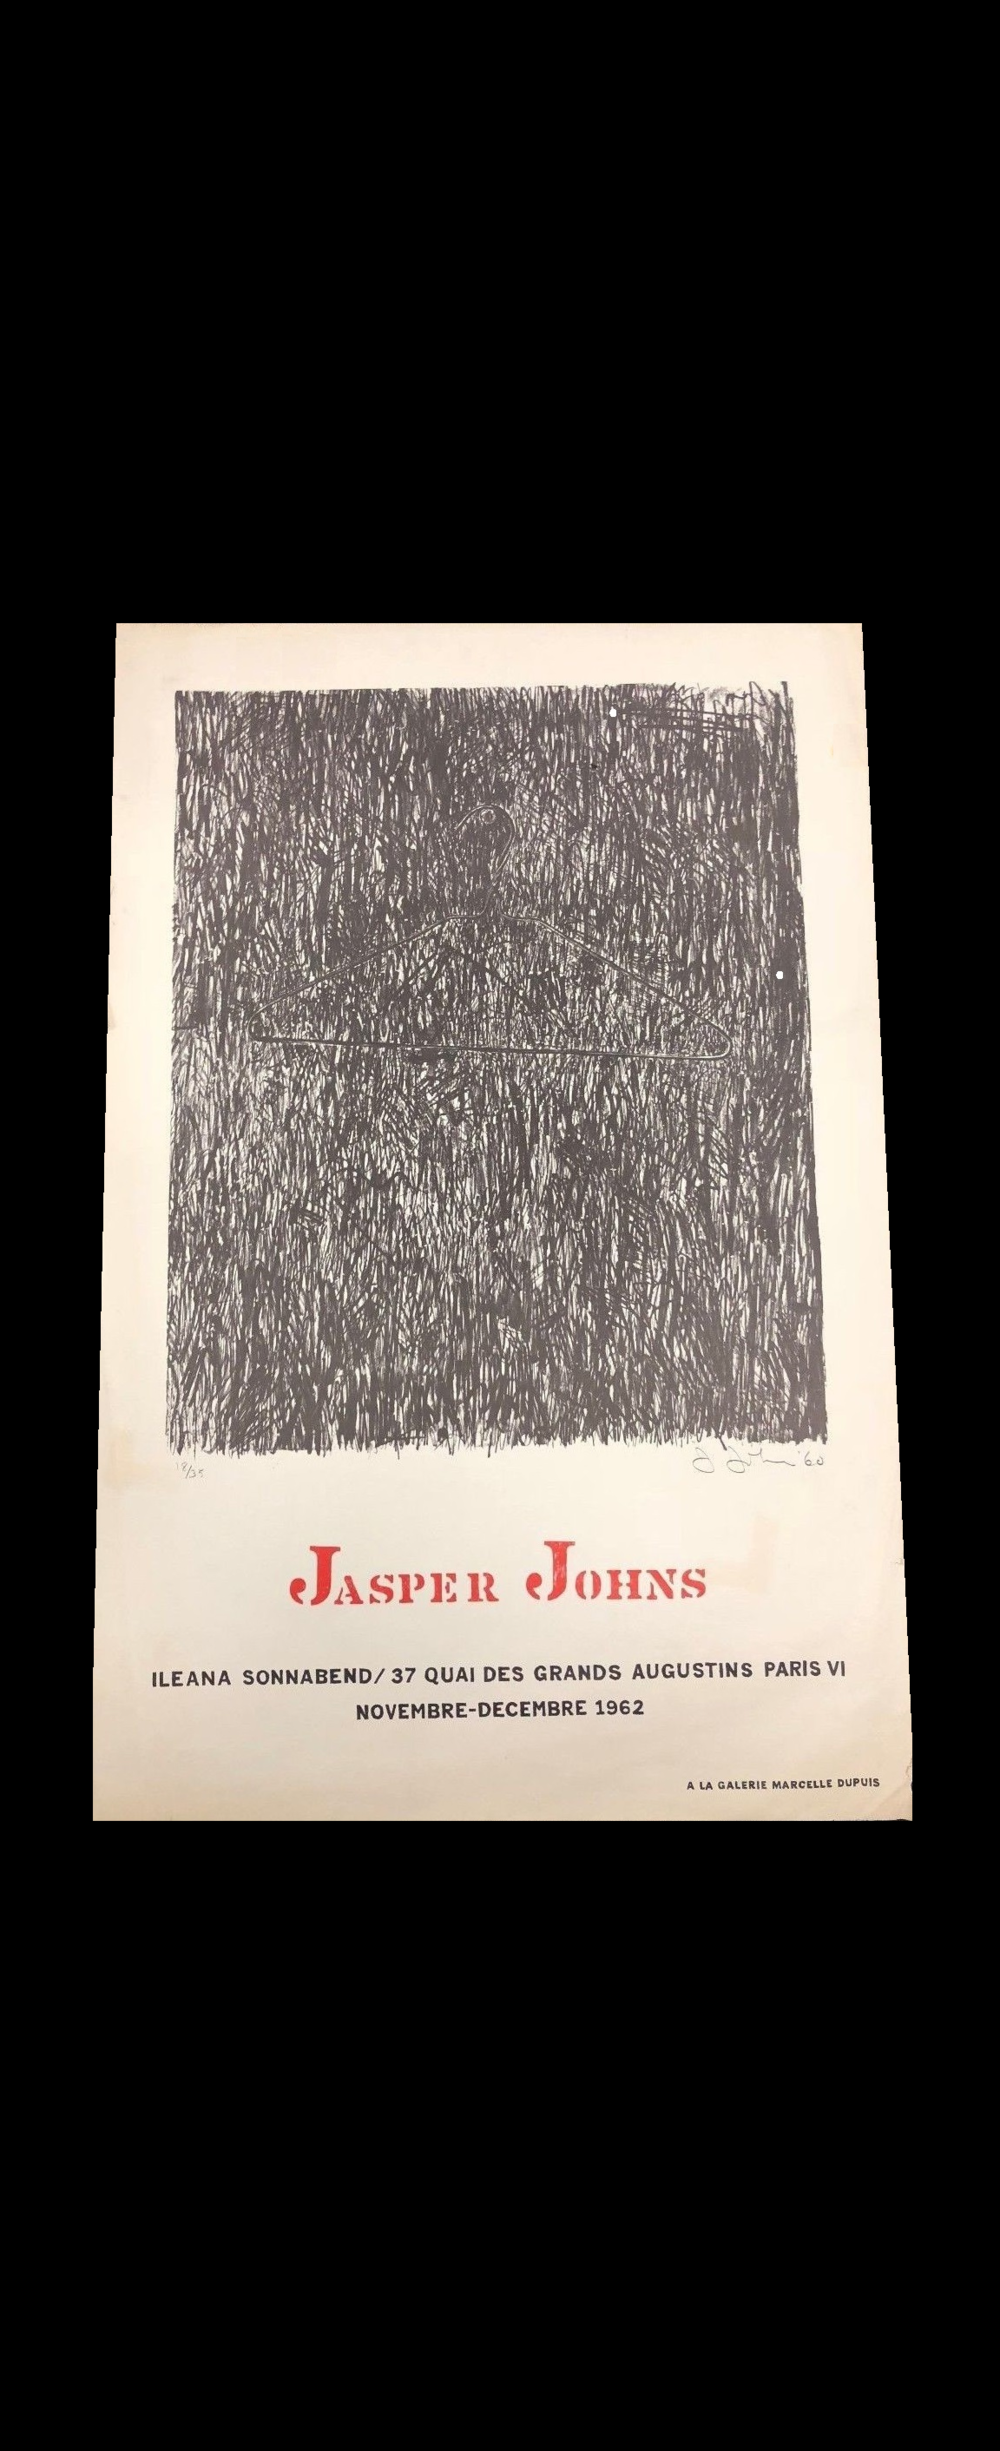 """JASPER JOHNS"",  1962, Exhibition Poster, Ileana Sonnabend Paris., 31-9/10 × 21-3/10 in. (81 × 54 cm)"